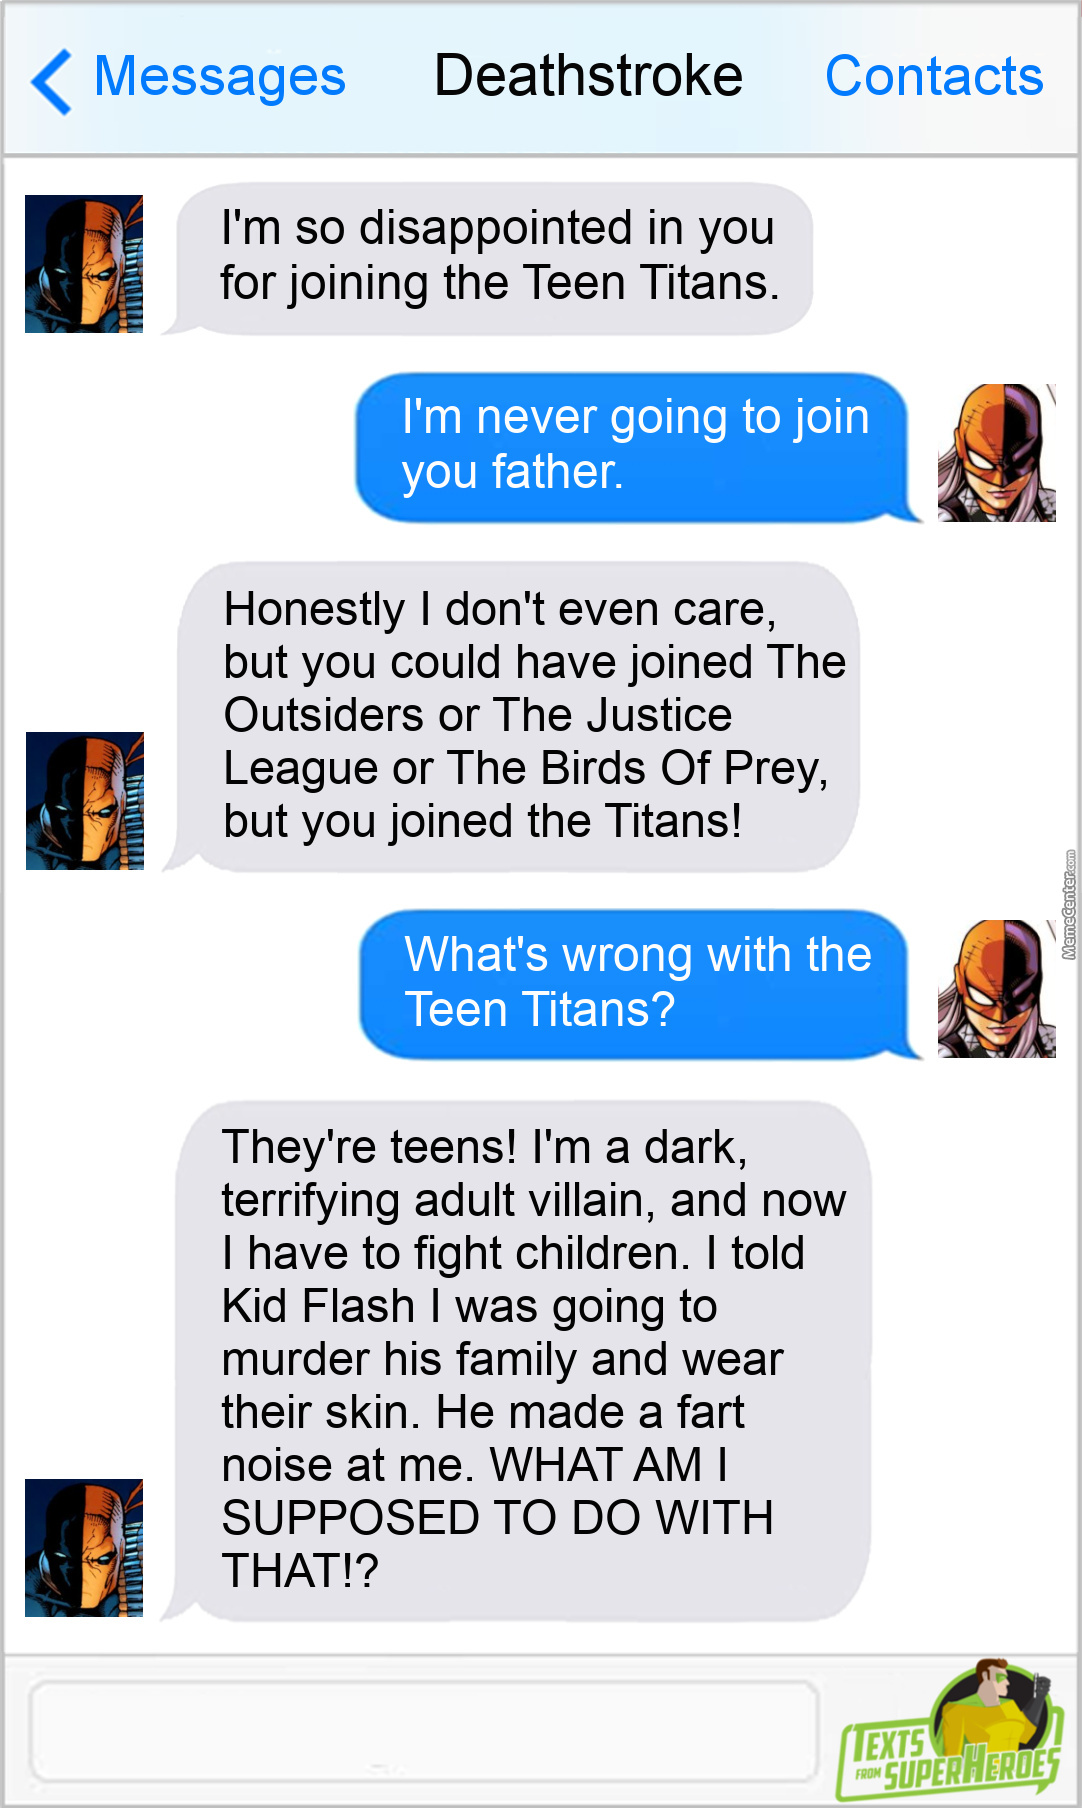 Poor Deathstroke. Having To Deal With Superpowered Kids